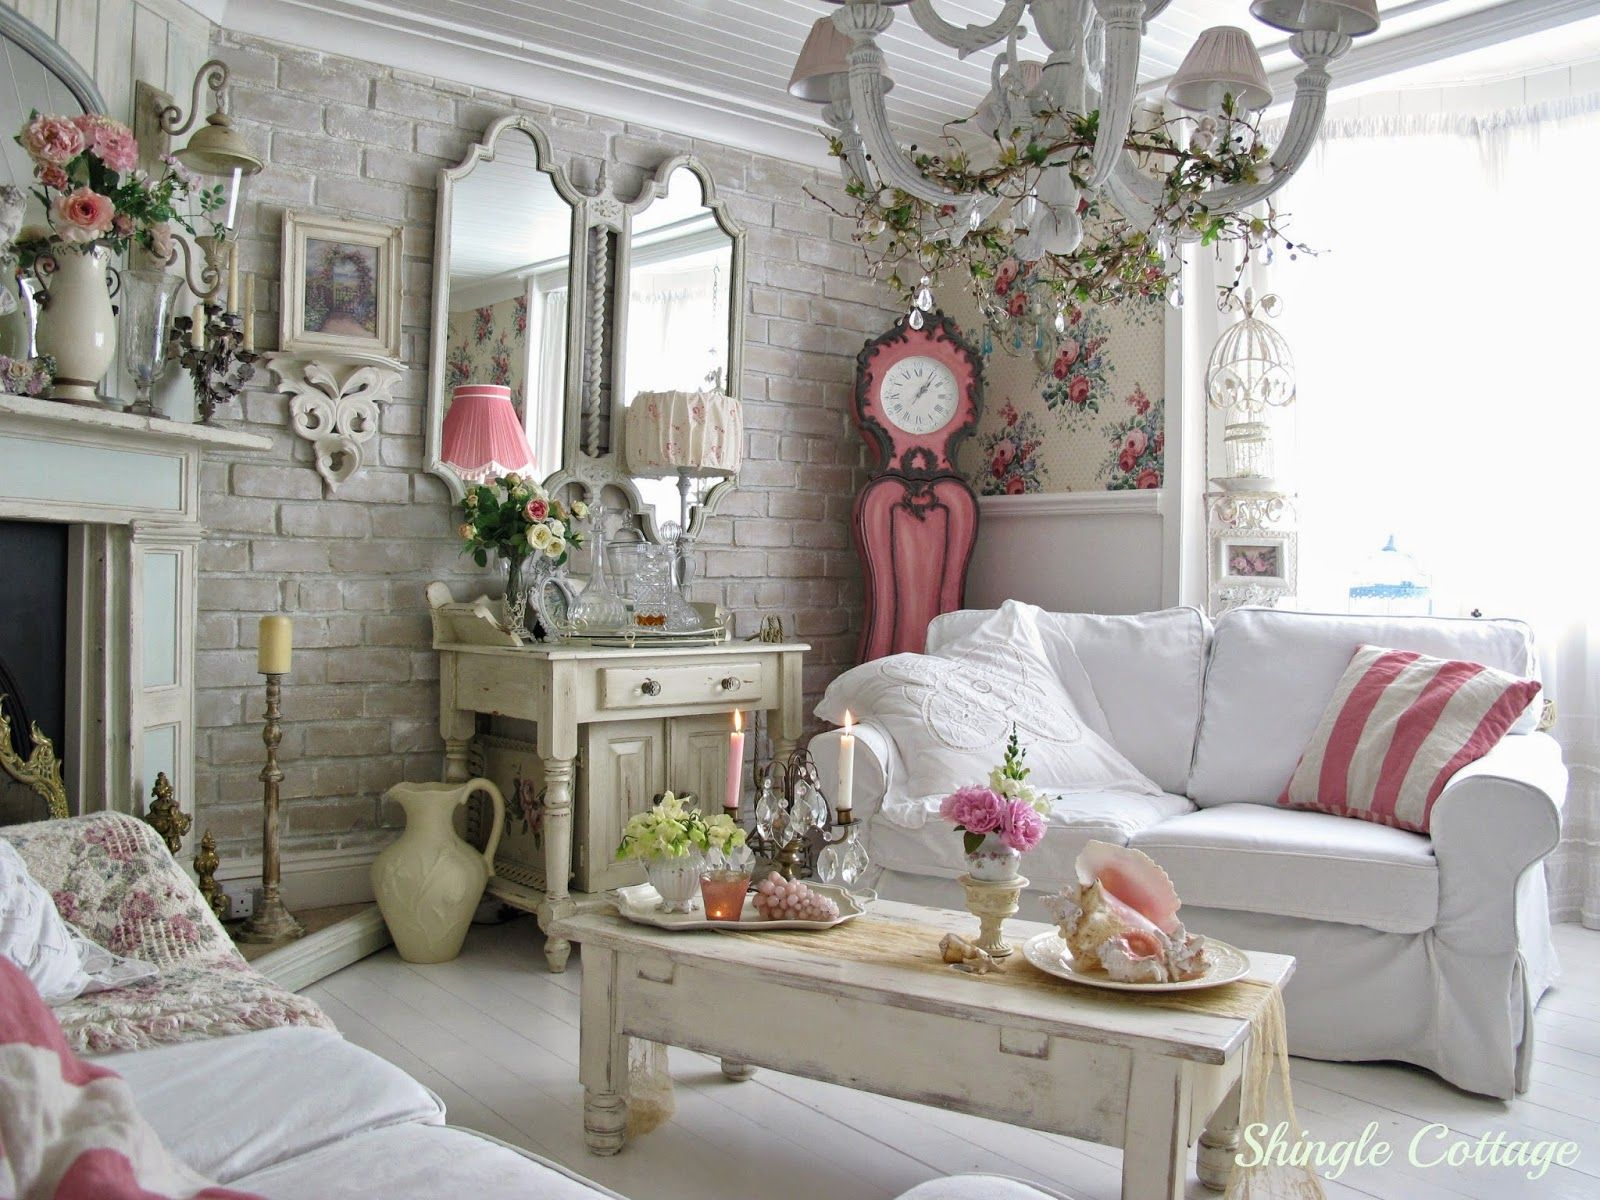 livingroom living bedroom rooms country decor style design ideas decorating cottage small scenic sitting dining room